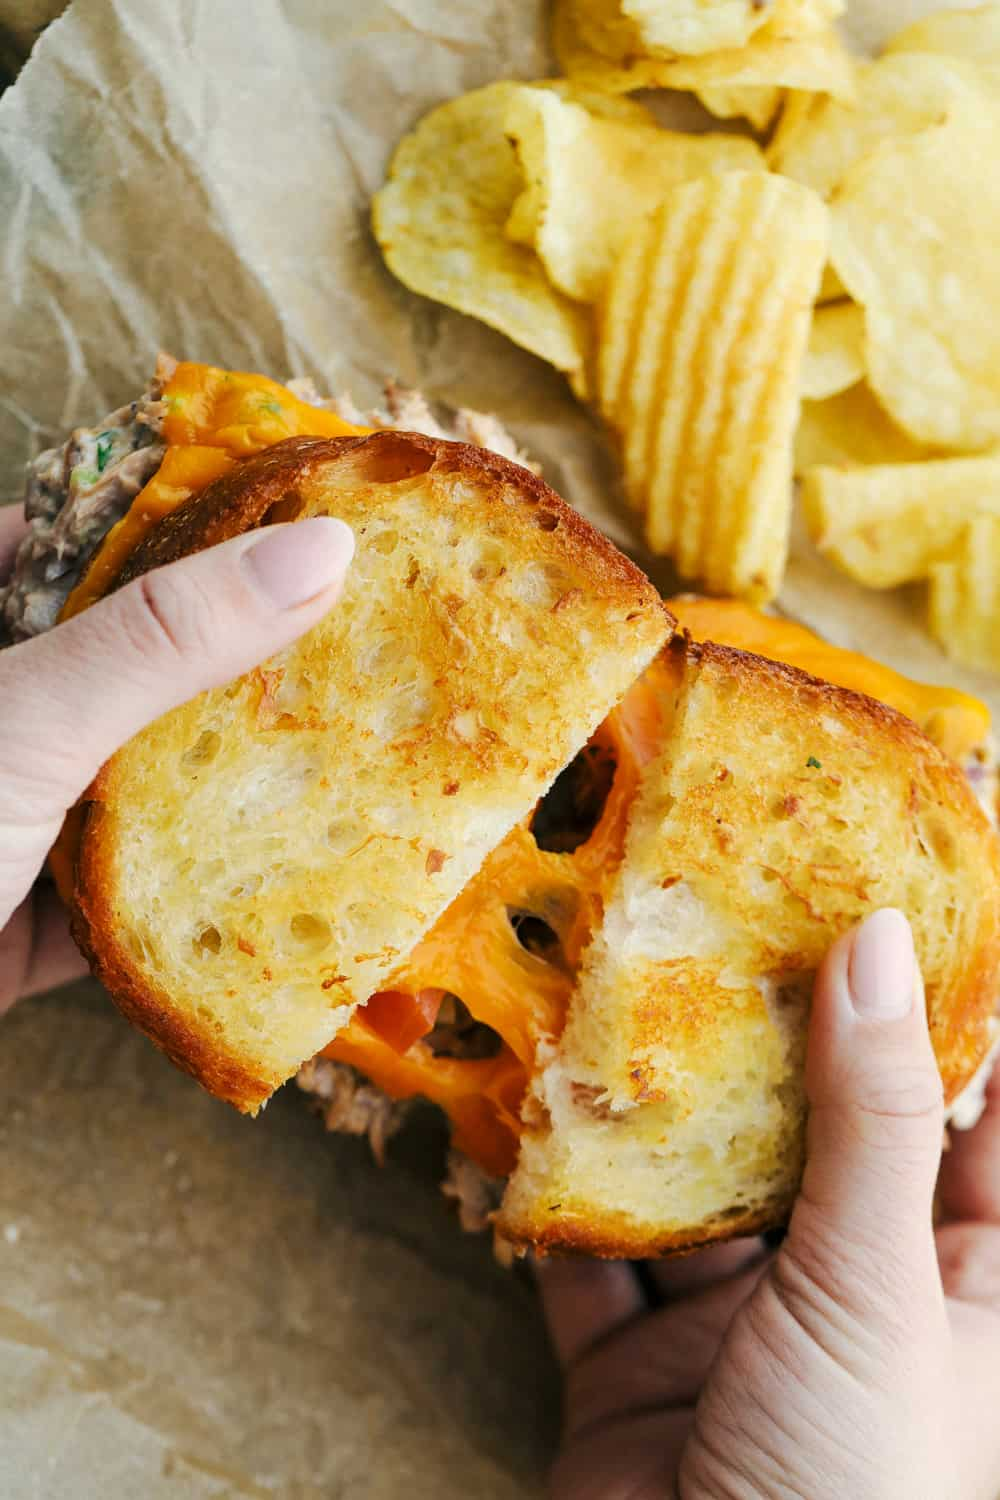 A tuna melt sandwich being pulled apart in a photo with chips on the side.